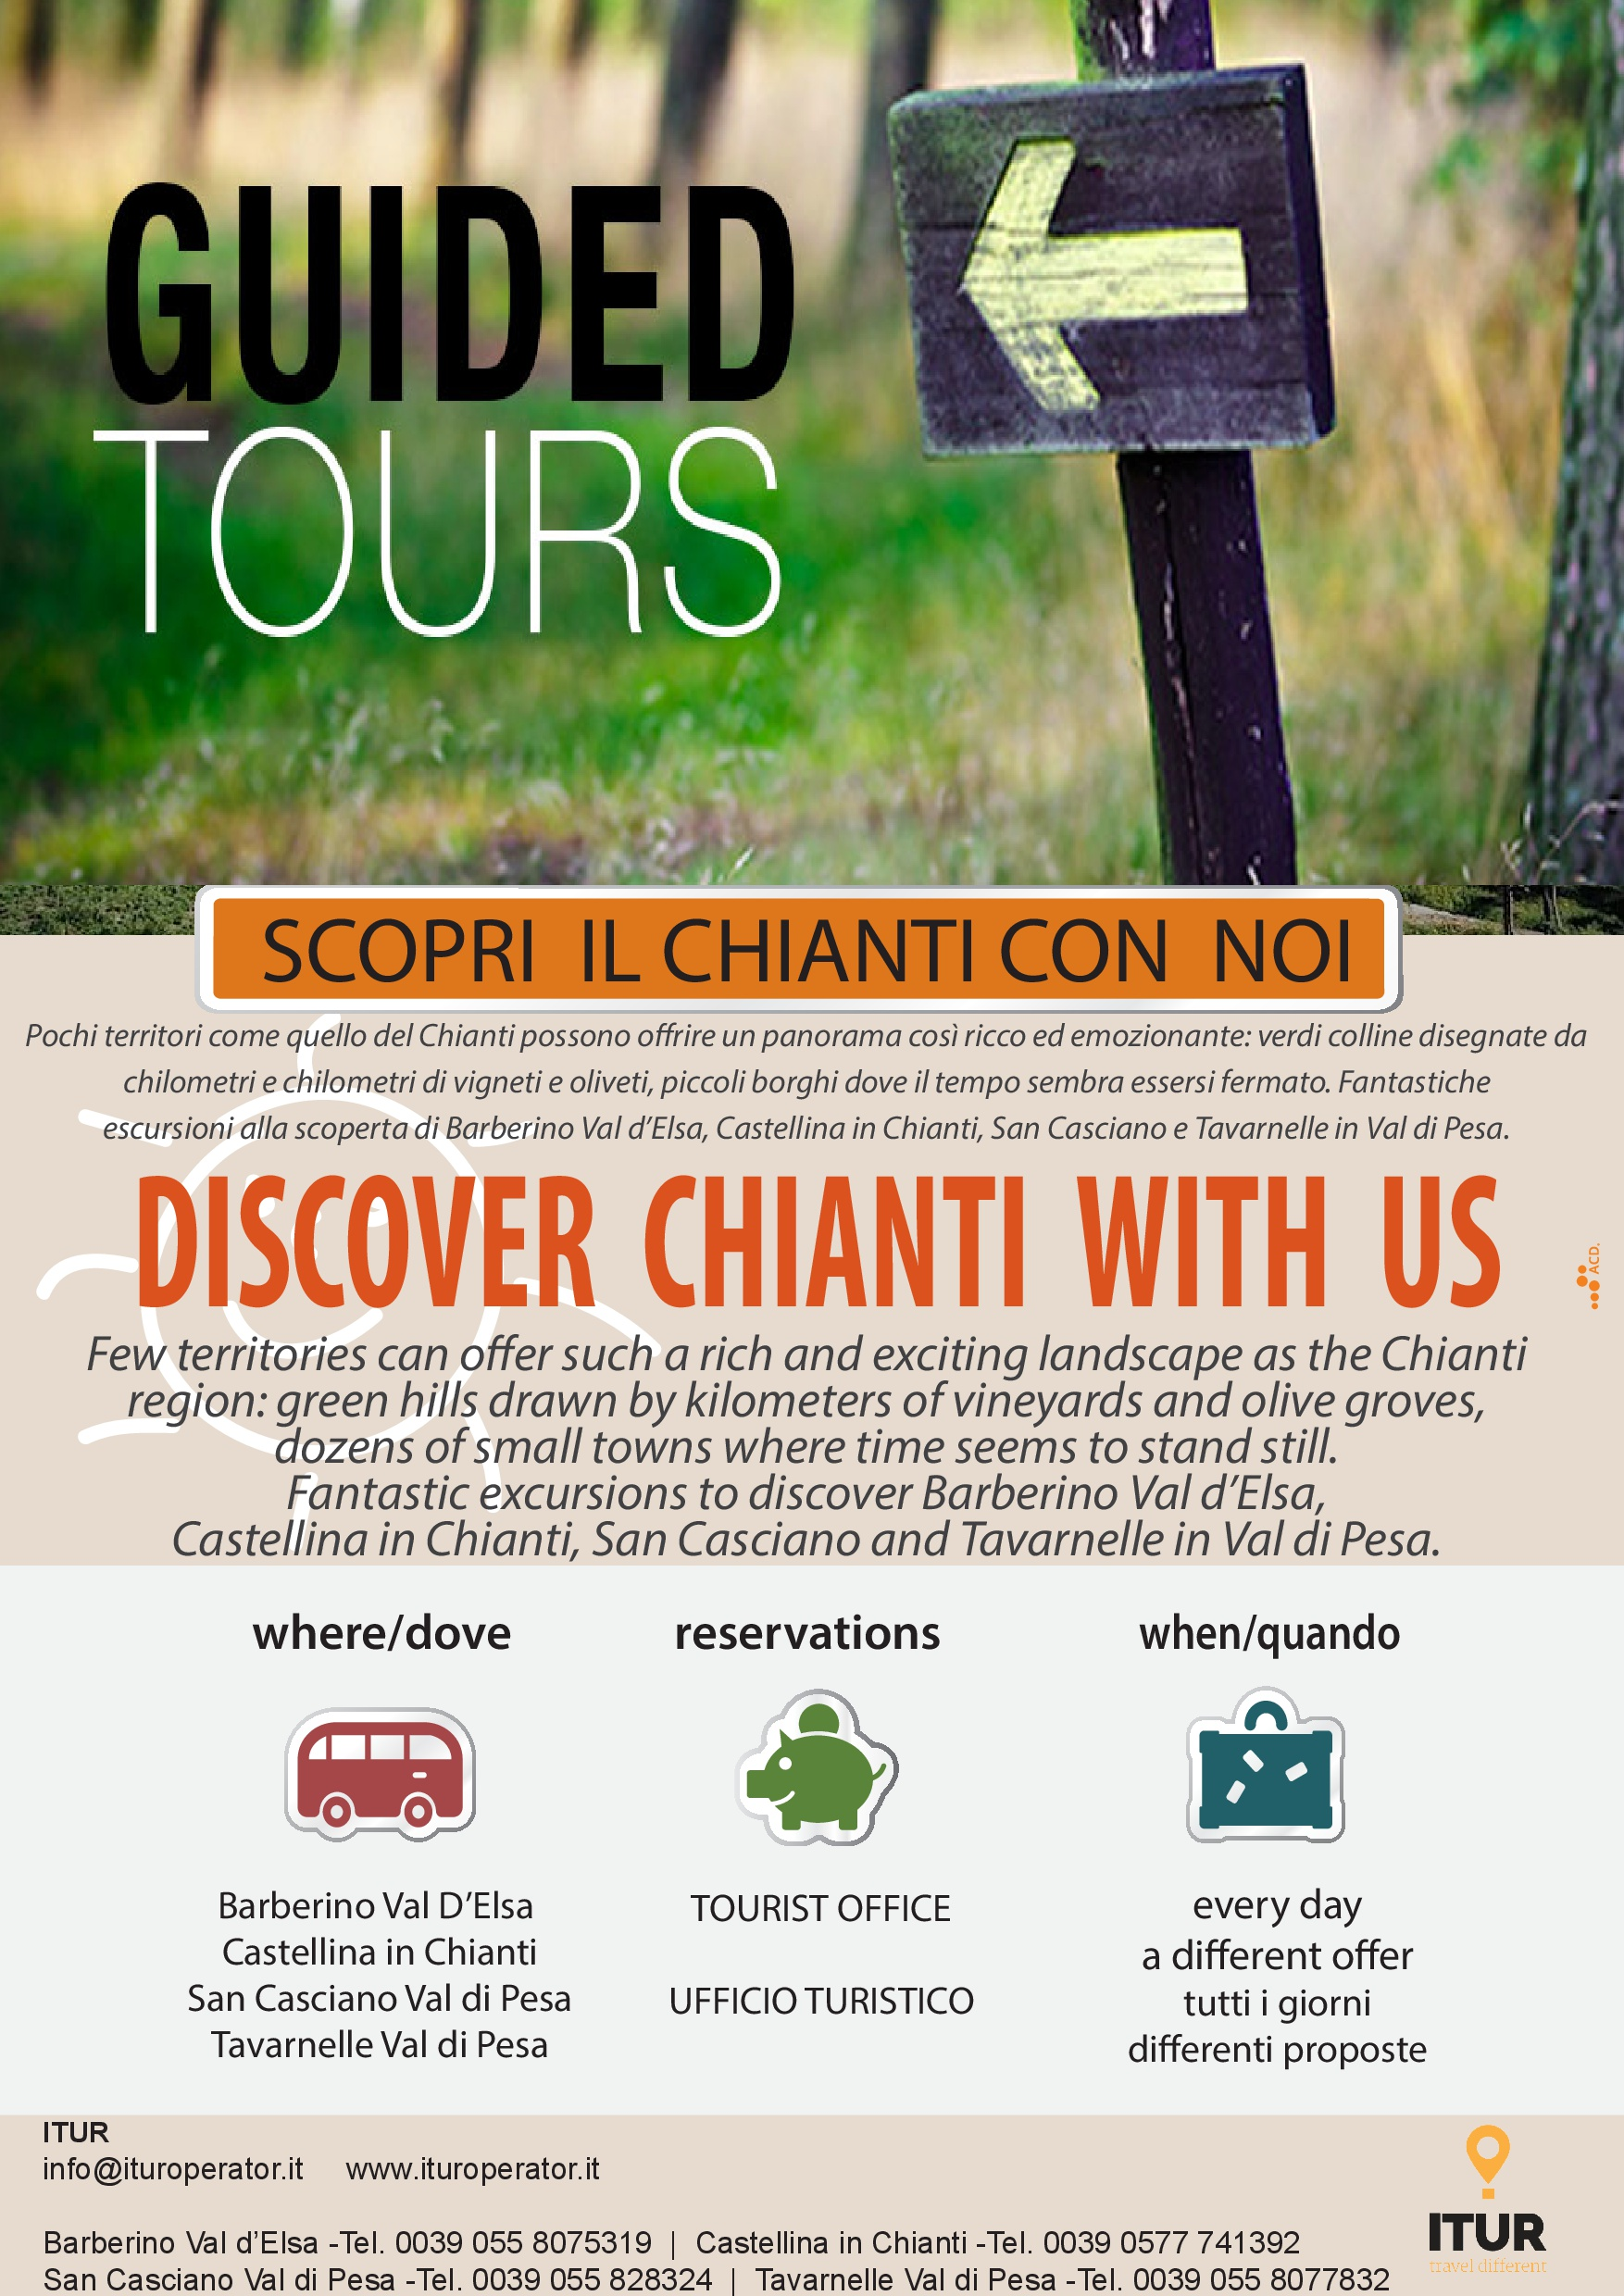 images/chianti_guided_tour.jpg